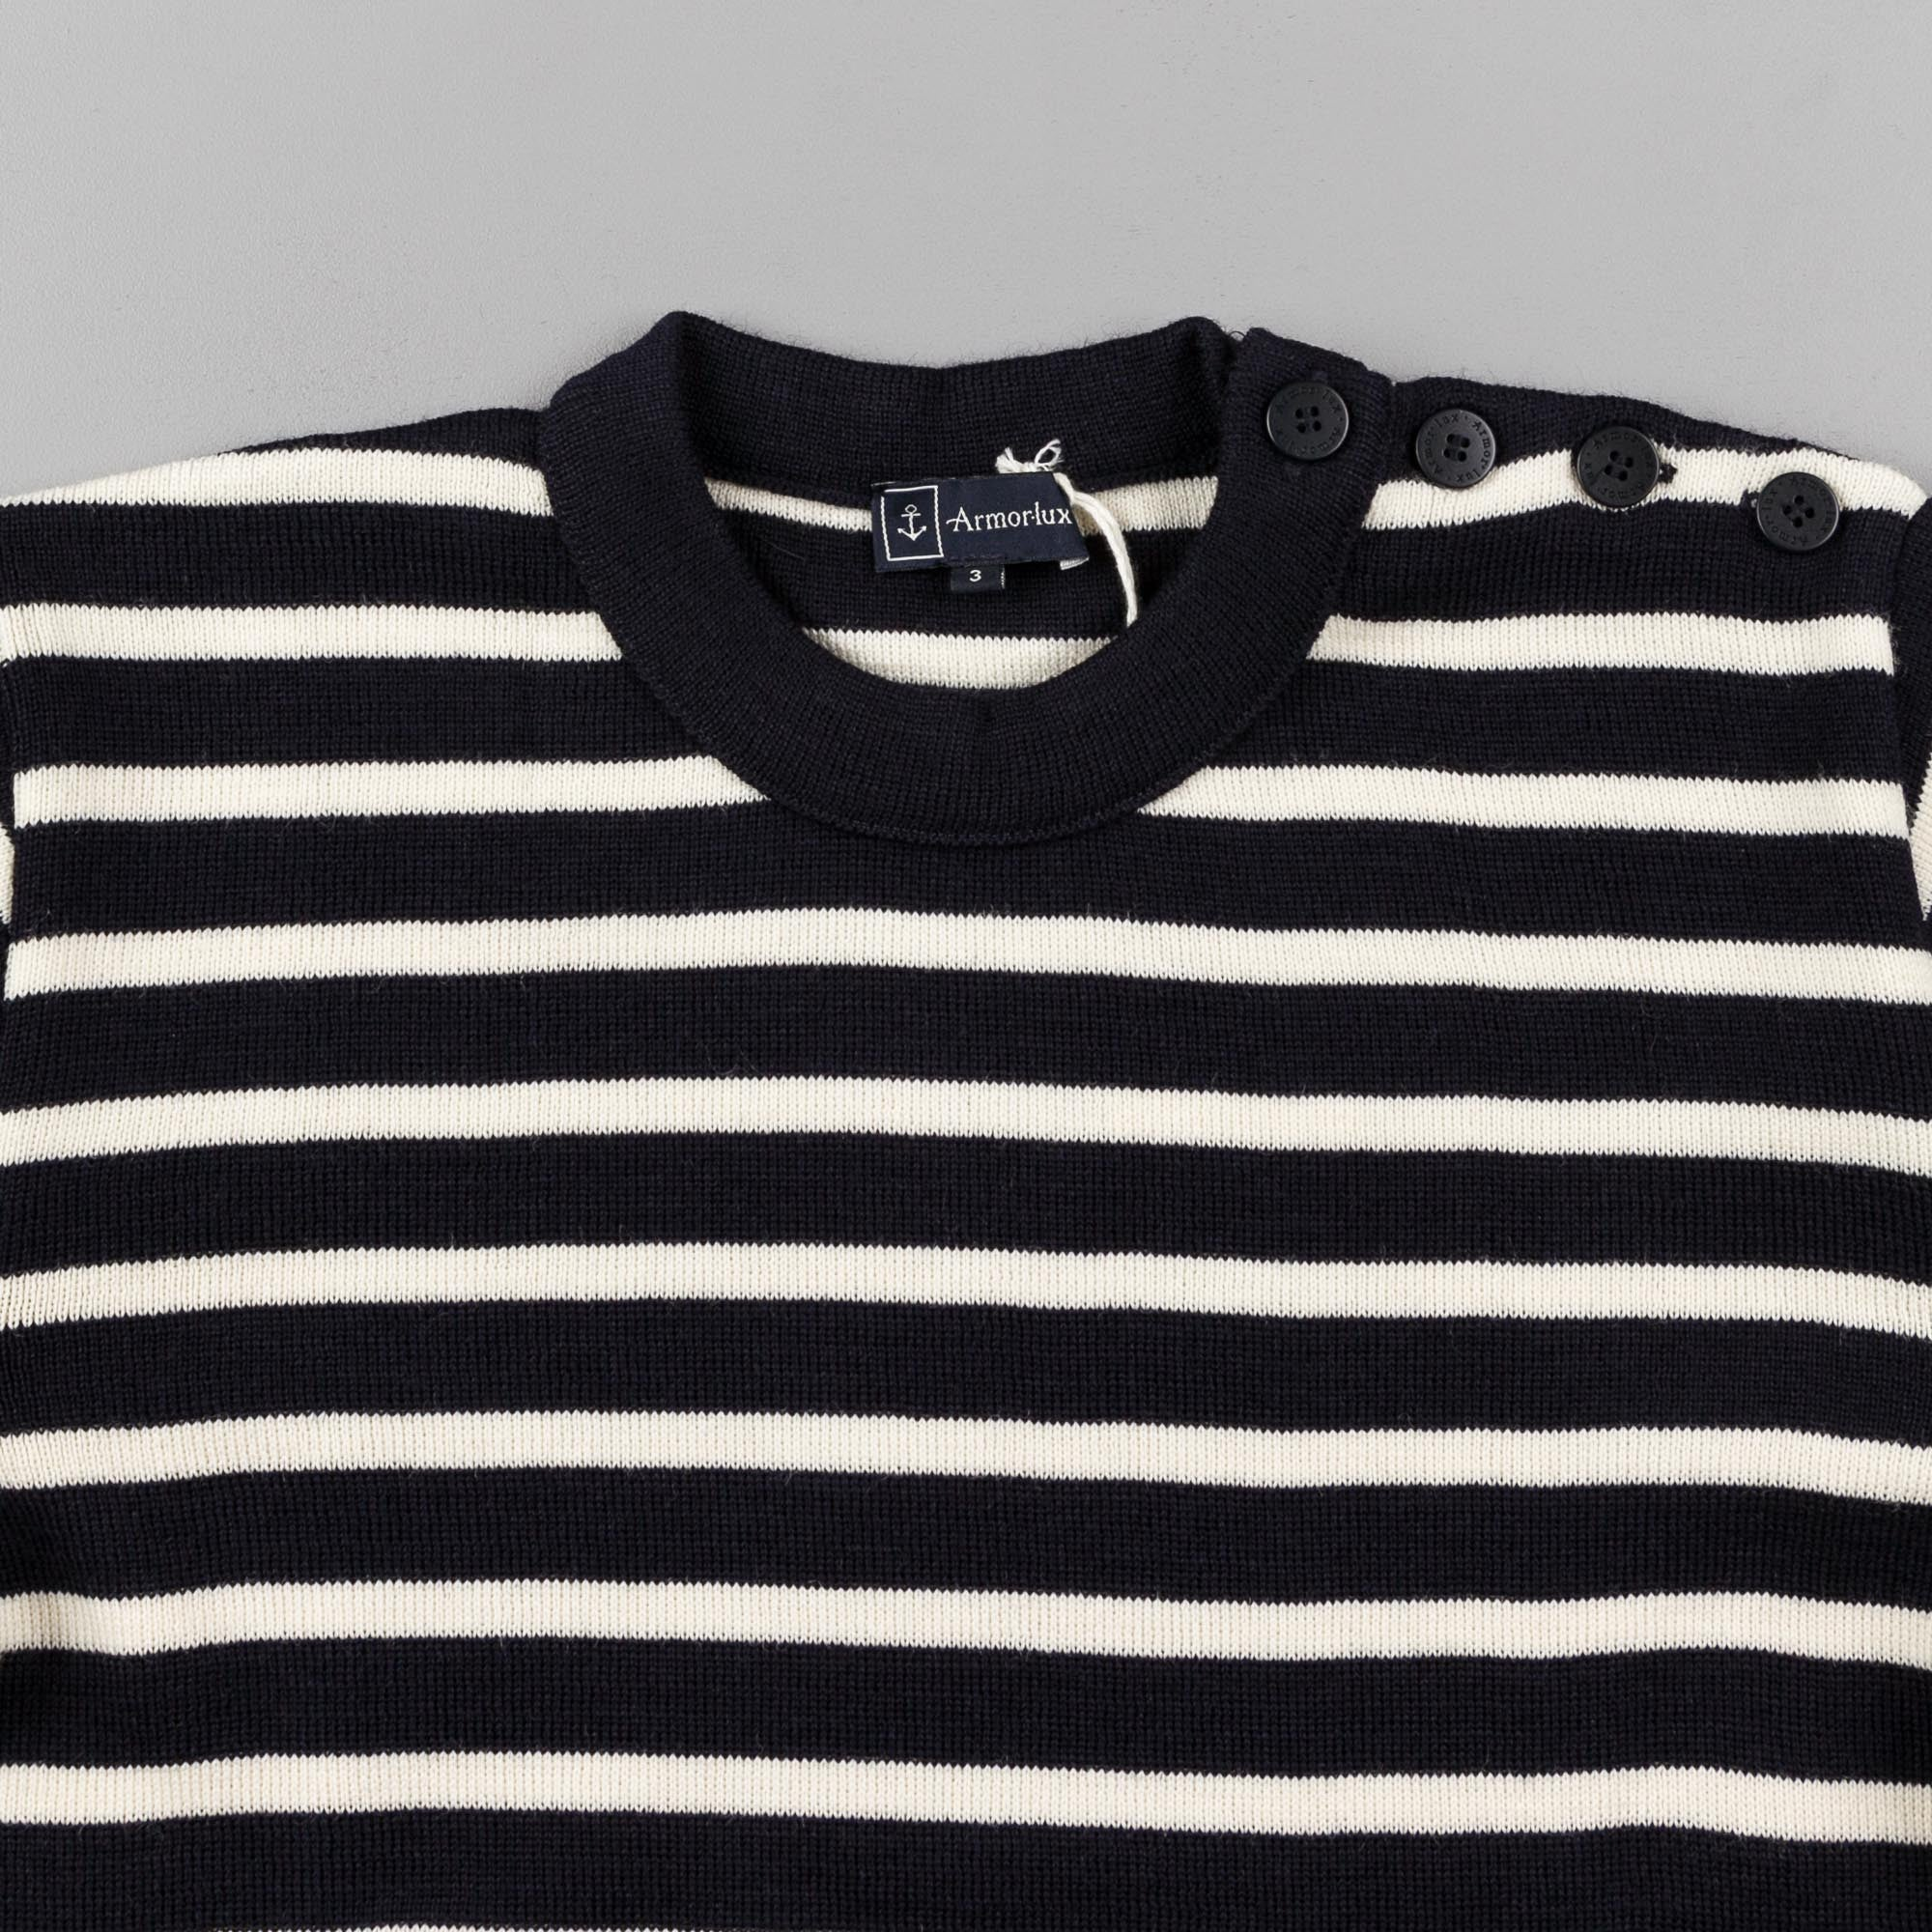 Armor Lux Stripe Knit Crewneck Sweatshirt - Navy / Nature